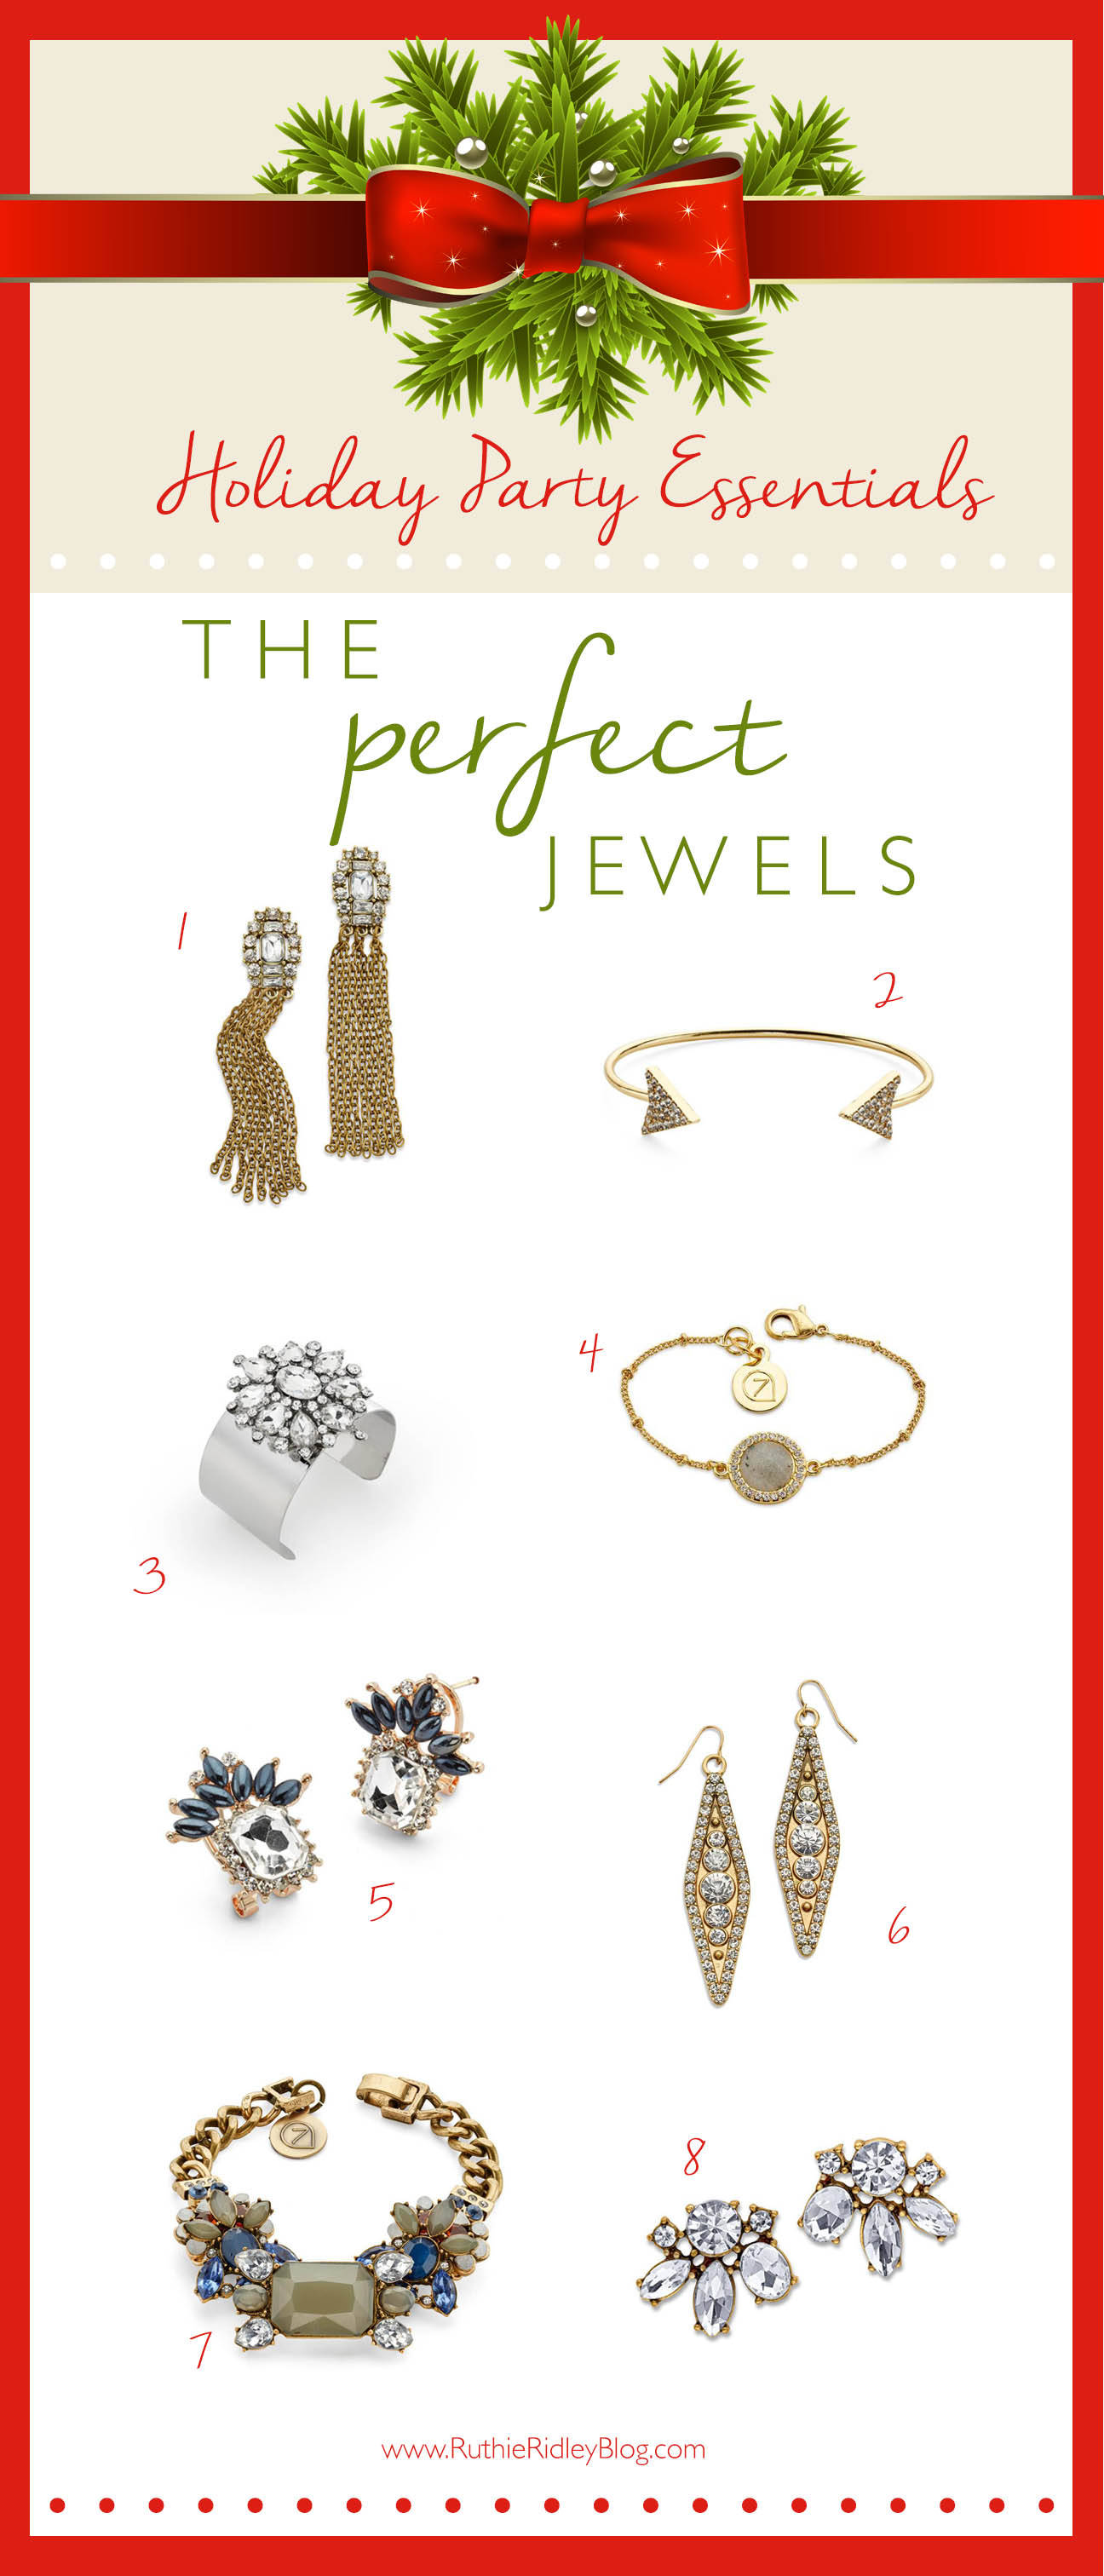 2 perfect ways to accessorize your Holiday look with elegance and style, featuring 7 Charming Sisters. Beautiful Jewels for an affordable price!